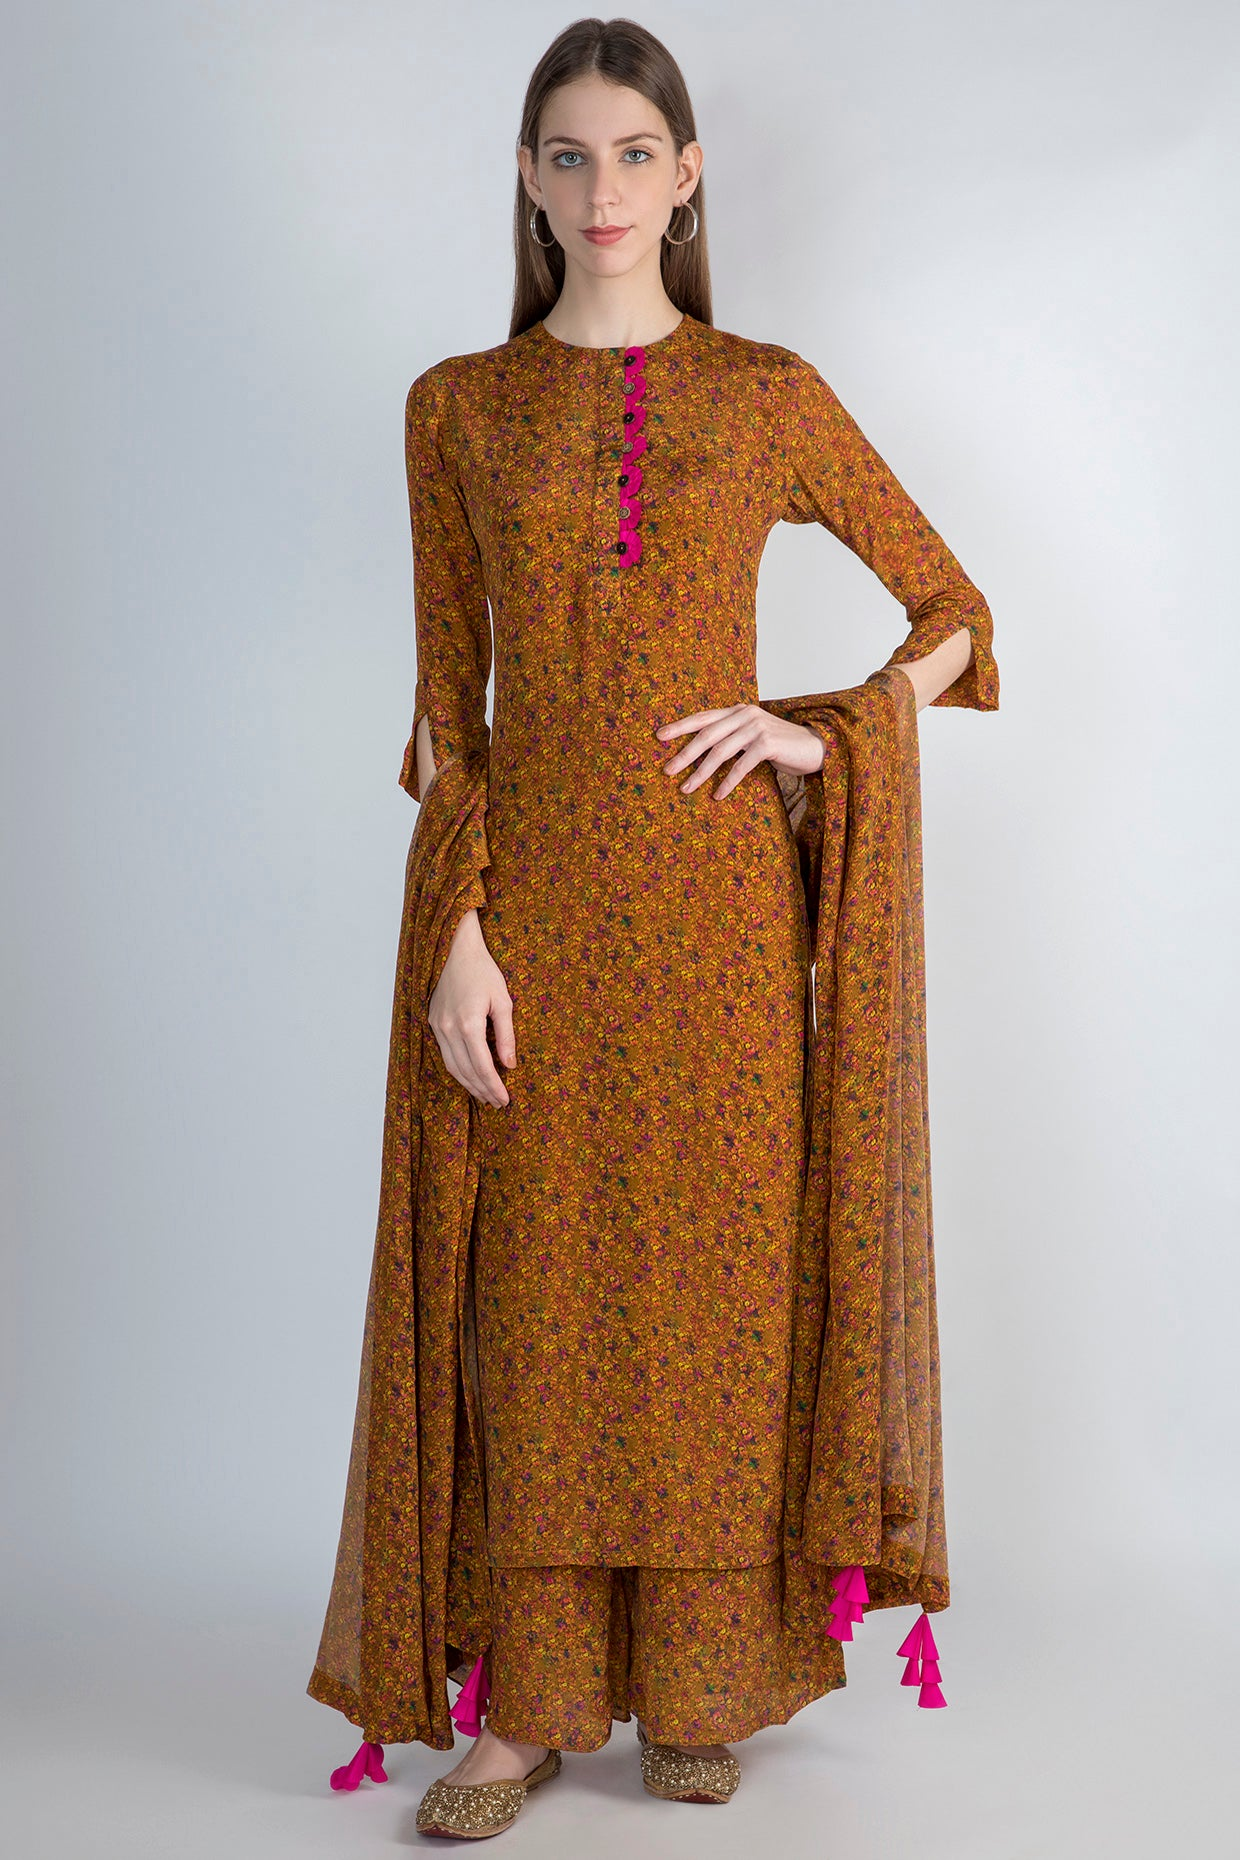 MUSTARD FLORAL RUSH KURTA, PALAZZO AND DUPATTA - The Grand Trunk